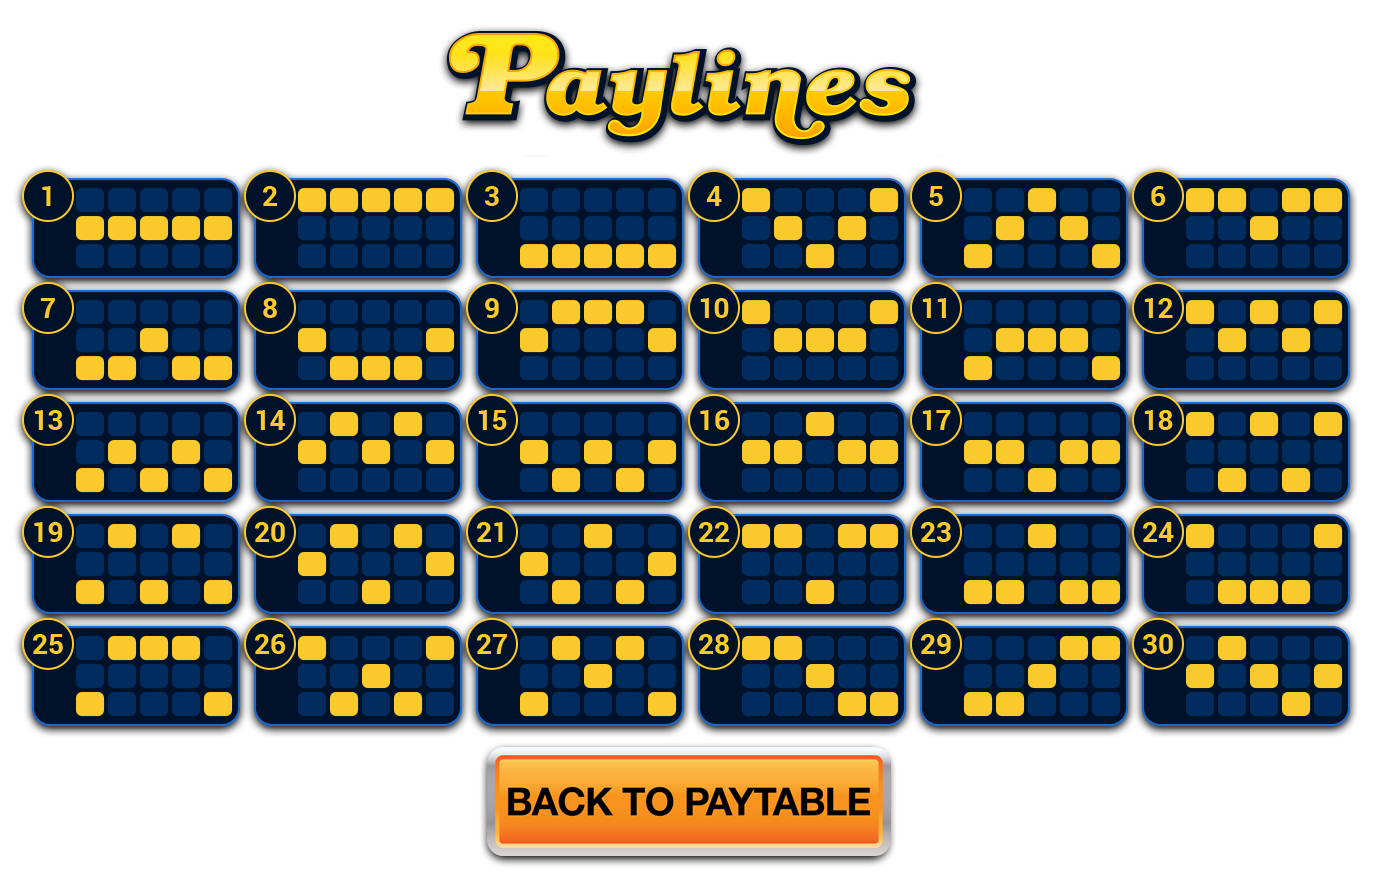 PCHkeno Path Games Now games, Online sweepstakes